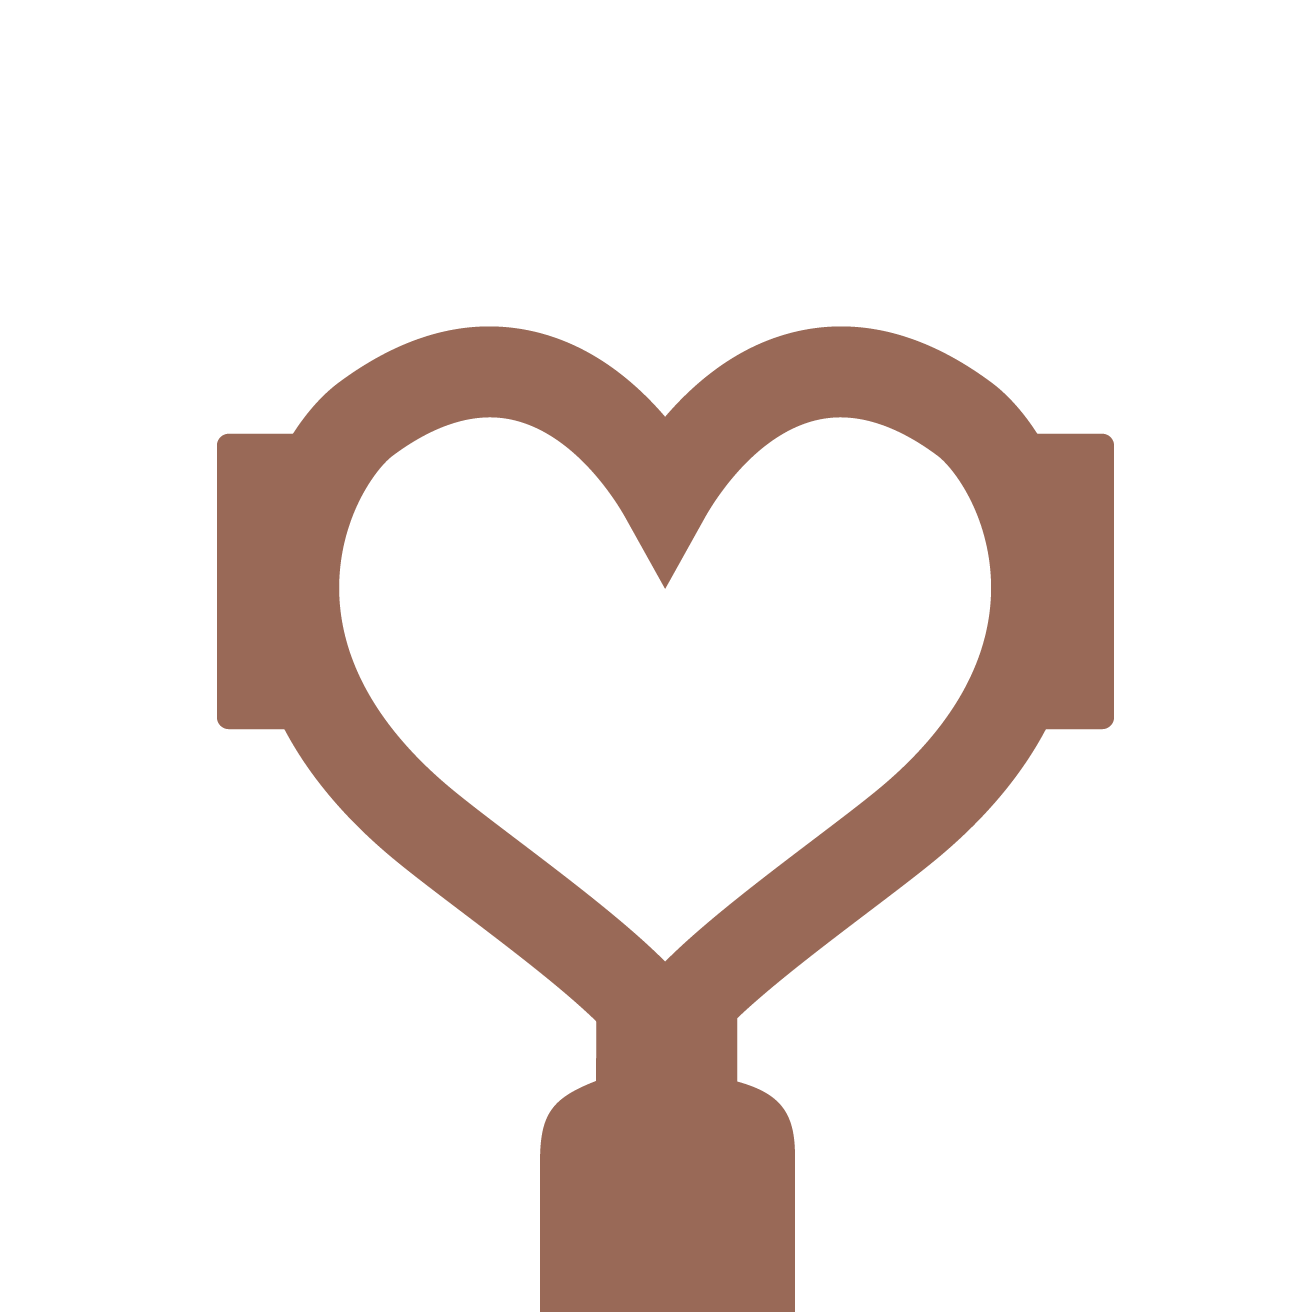 Saturday September 28th Home Barista Master Class with Ben Townsend, 9.30am -12.30pm